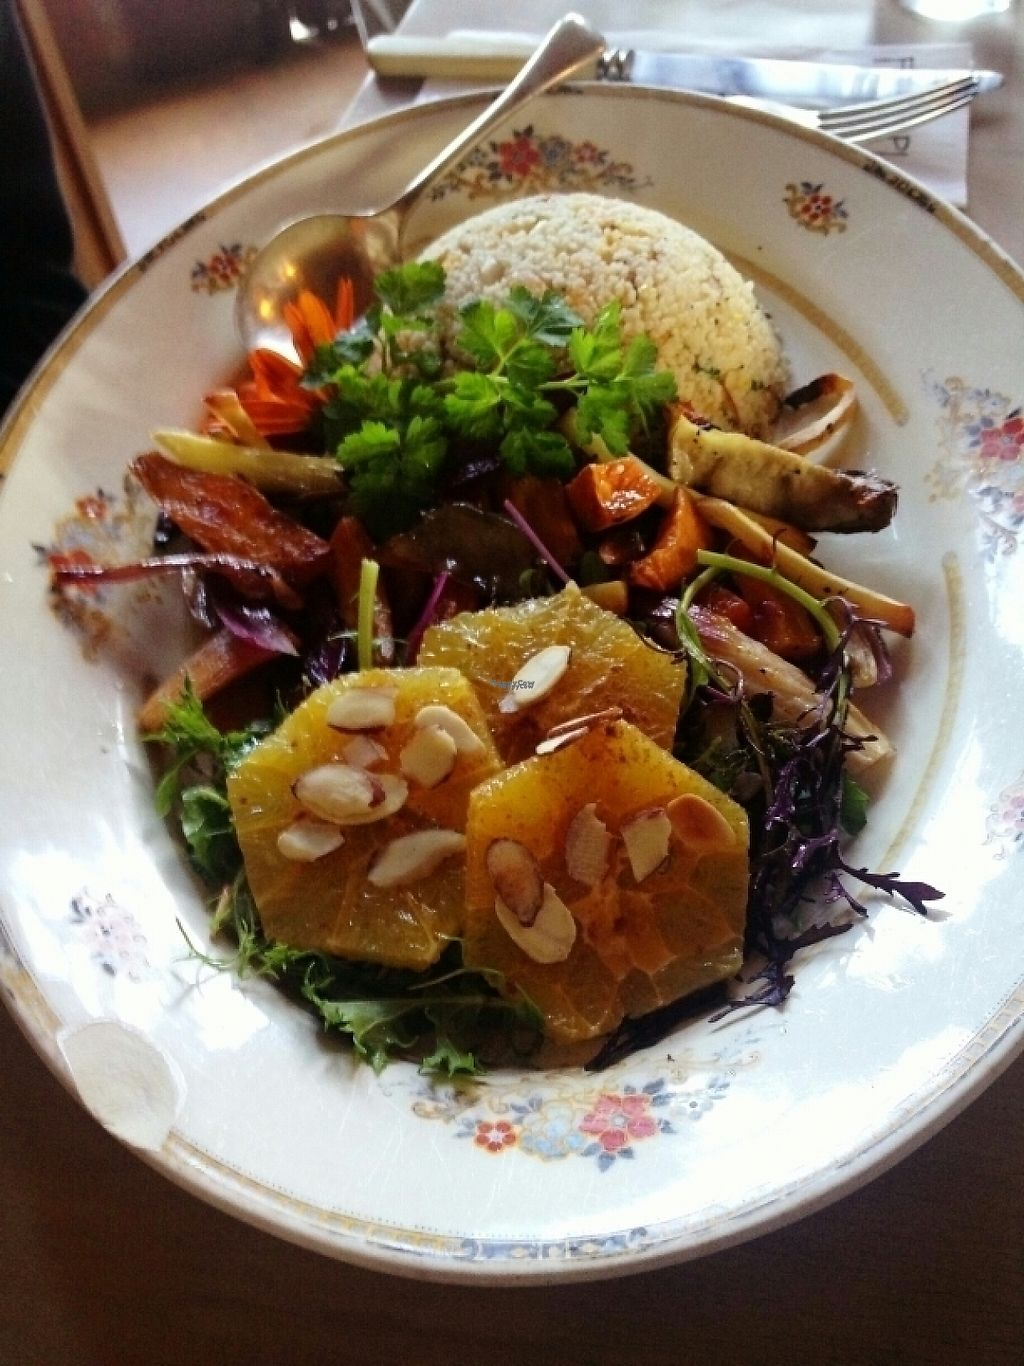 """Photo of Fleurs Place  by <a href=""""/members/profile/Fontalamh"""">Fontalamh</a> <br/>vegan orange and geranium roast vegetables <br/> April 16, 2017  - <a href='/contact/abuse/image/40731/248601'>Report</a>"""